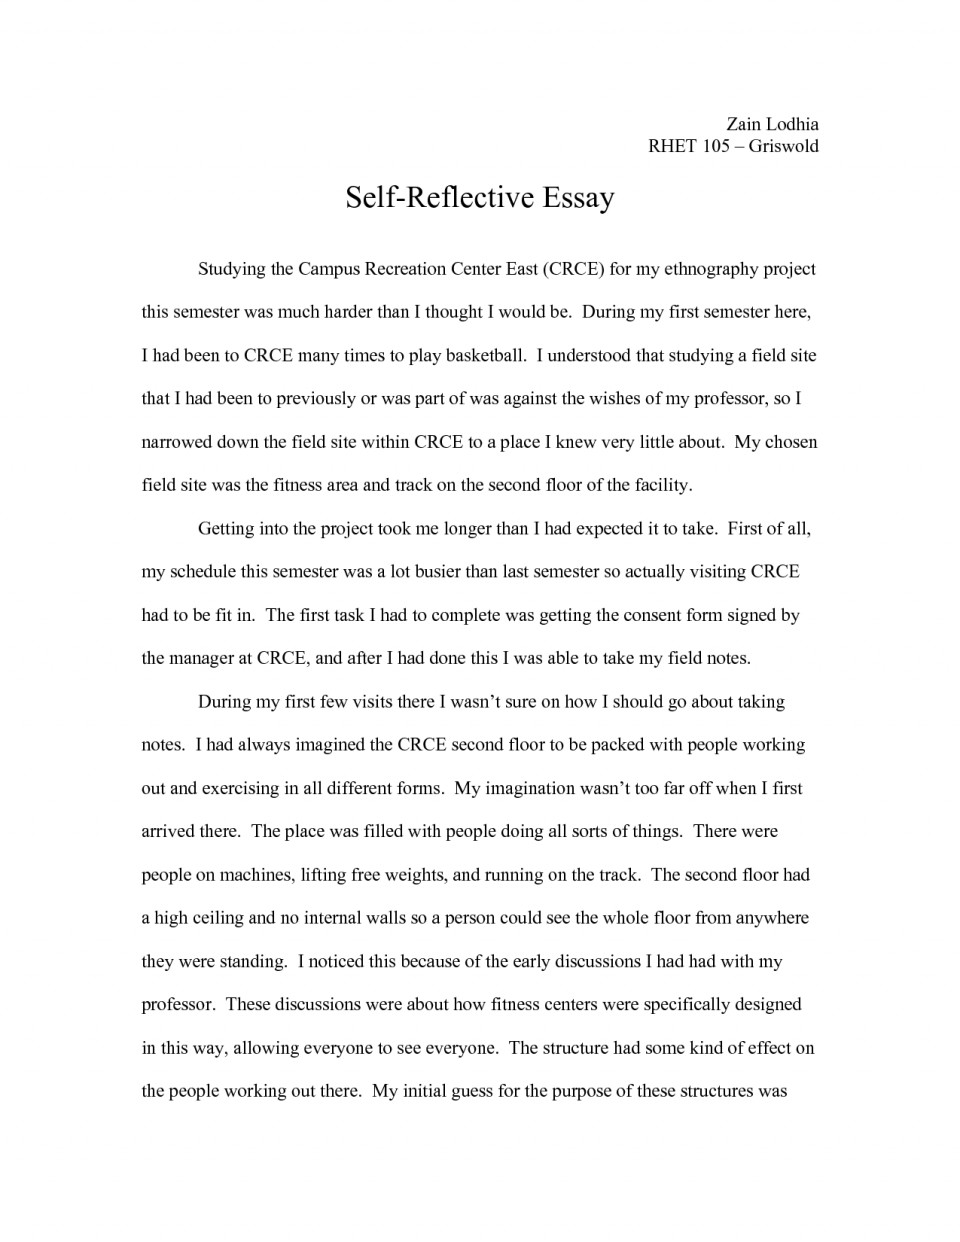 003 Reflective Essay Format Qal0pwnf46 Phenomenal Self Assessment Example Reflection Paper Apa 960